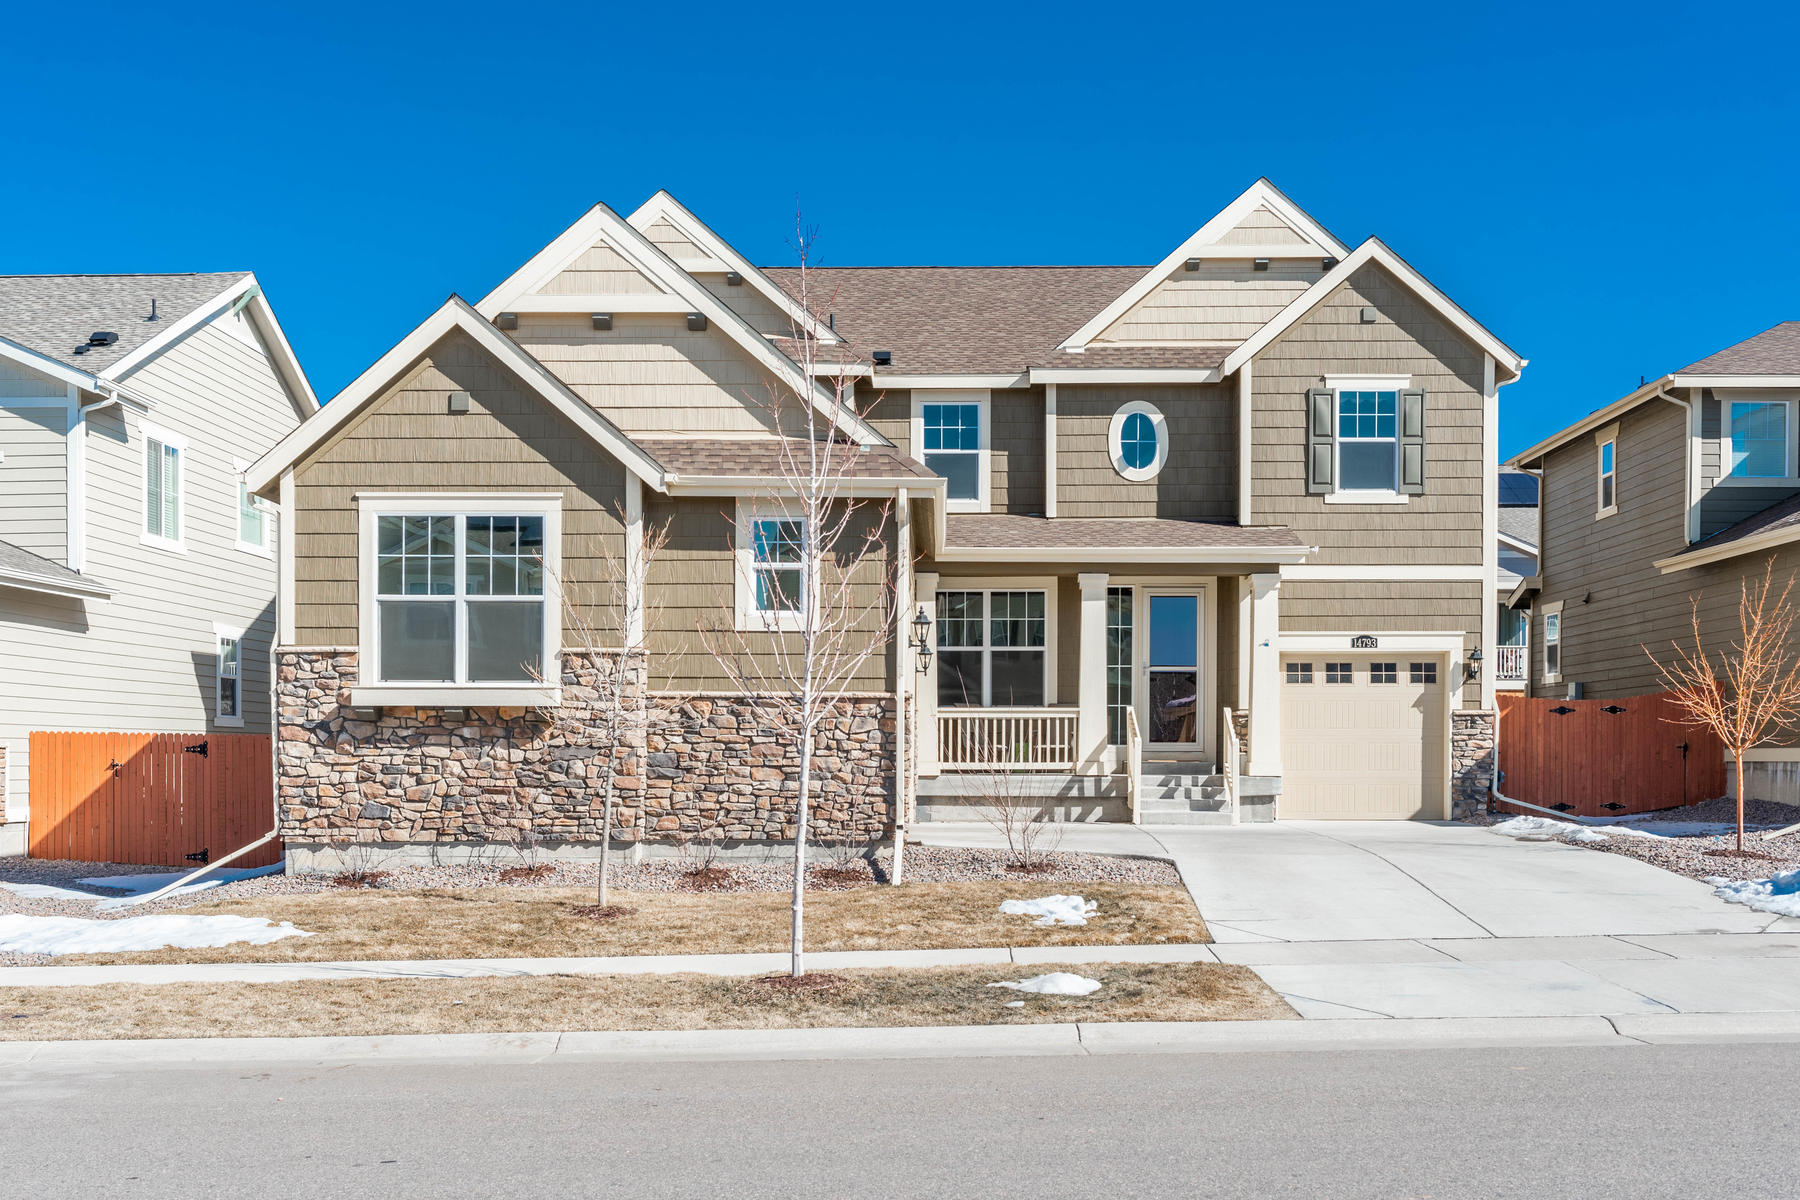 Single Family Homes for Sale at This beautiful 4 bedroom, 5 bathrooms modern home boasts an open floorplan 14793 Vienna Circle Parker, Colorado 80134 United States